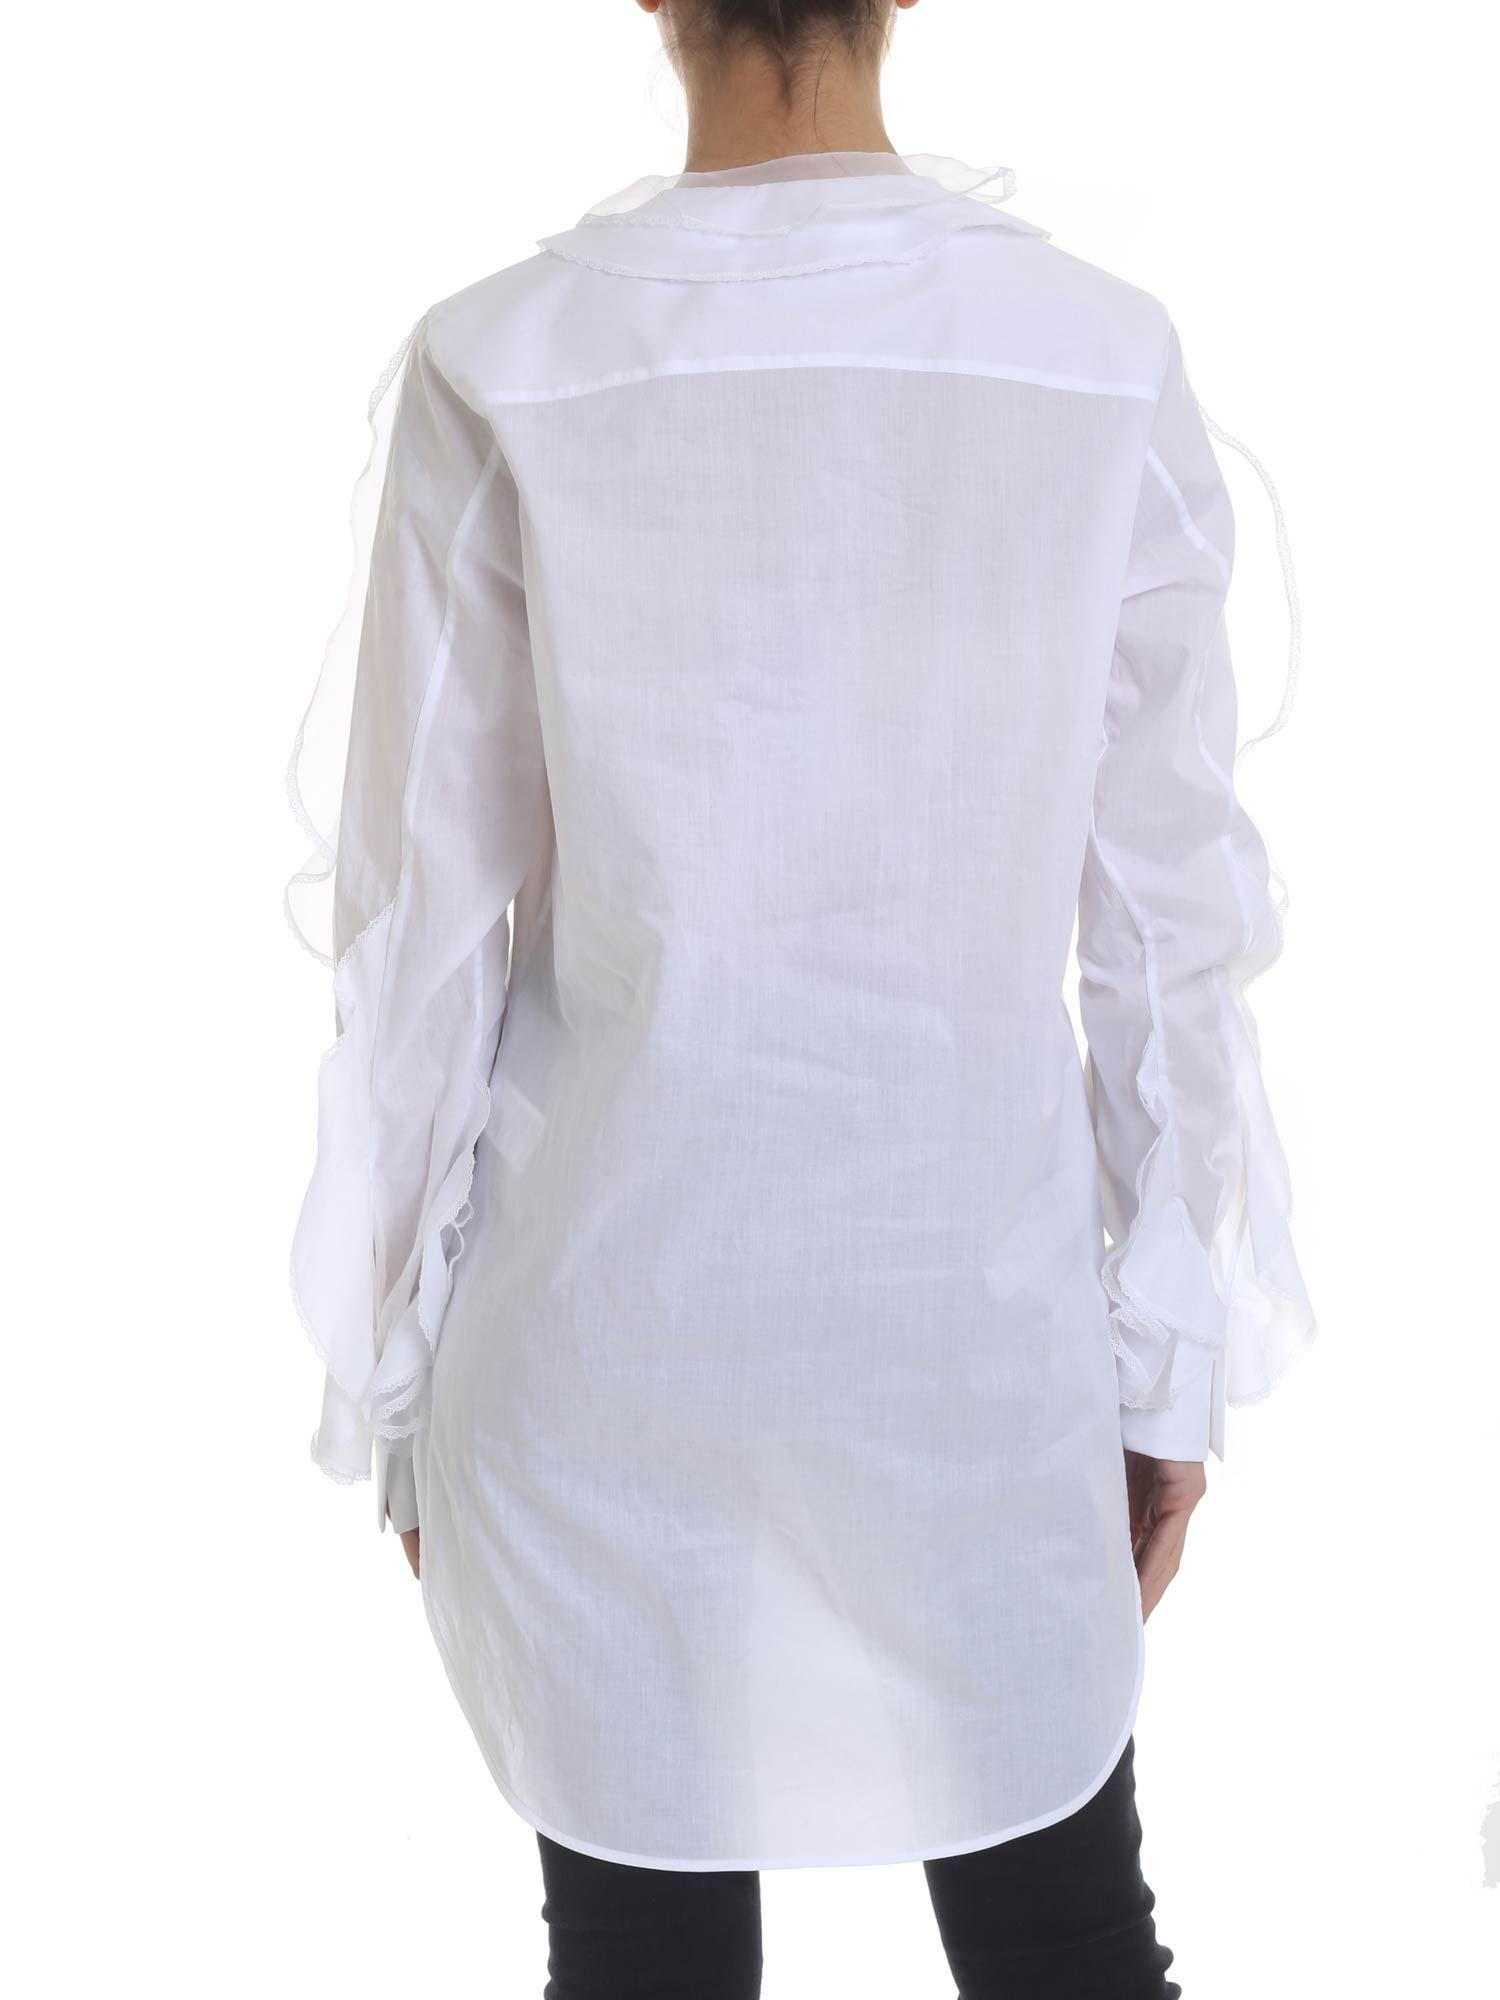 242bc2f677ee22 Ermanno Scervino - Blouse In White With Ruffles And Lace - Lyst. View  fullscreen